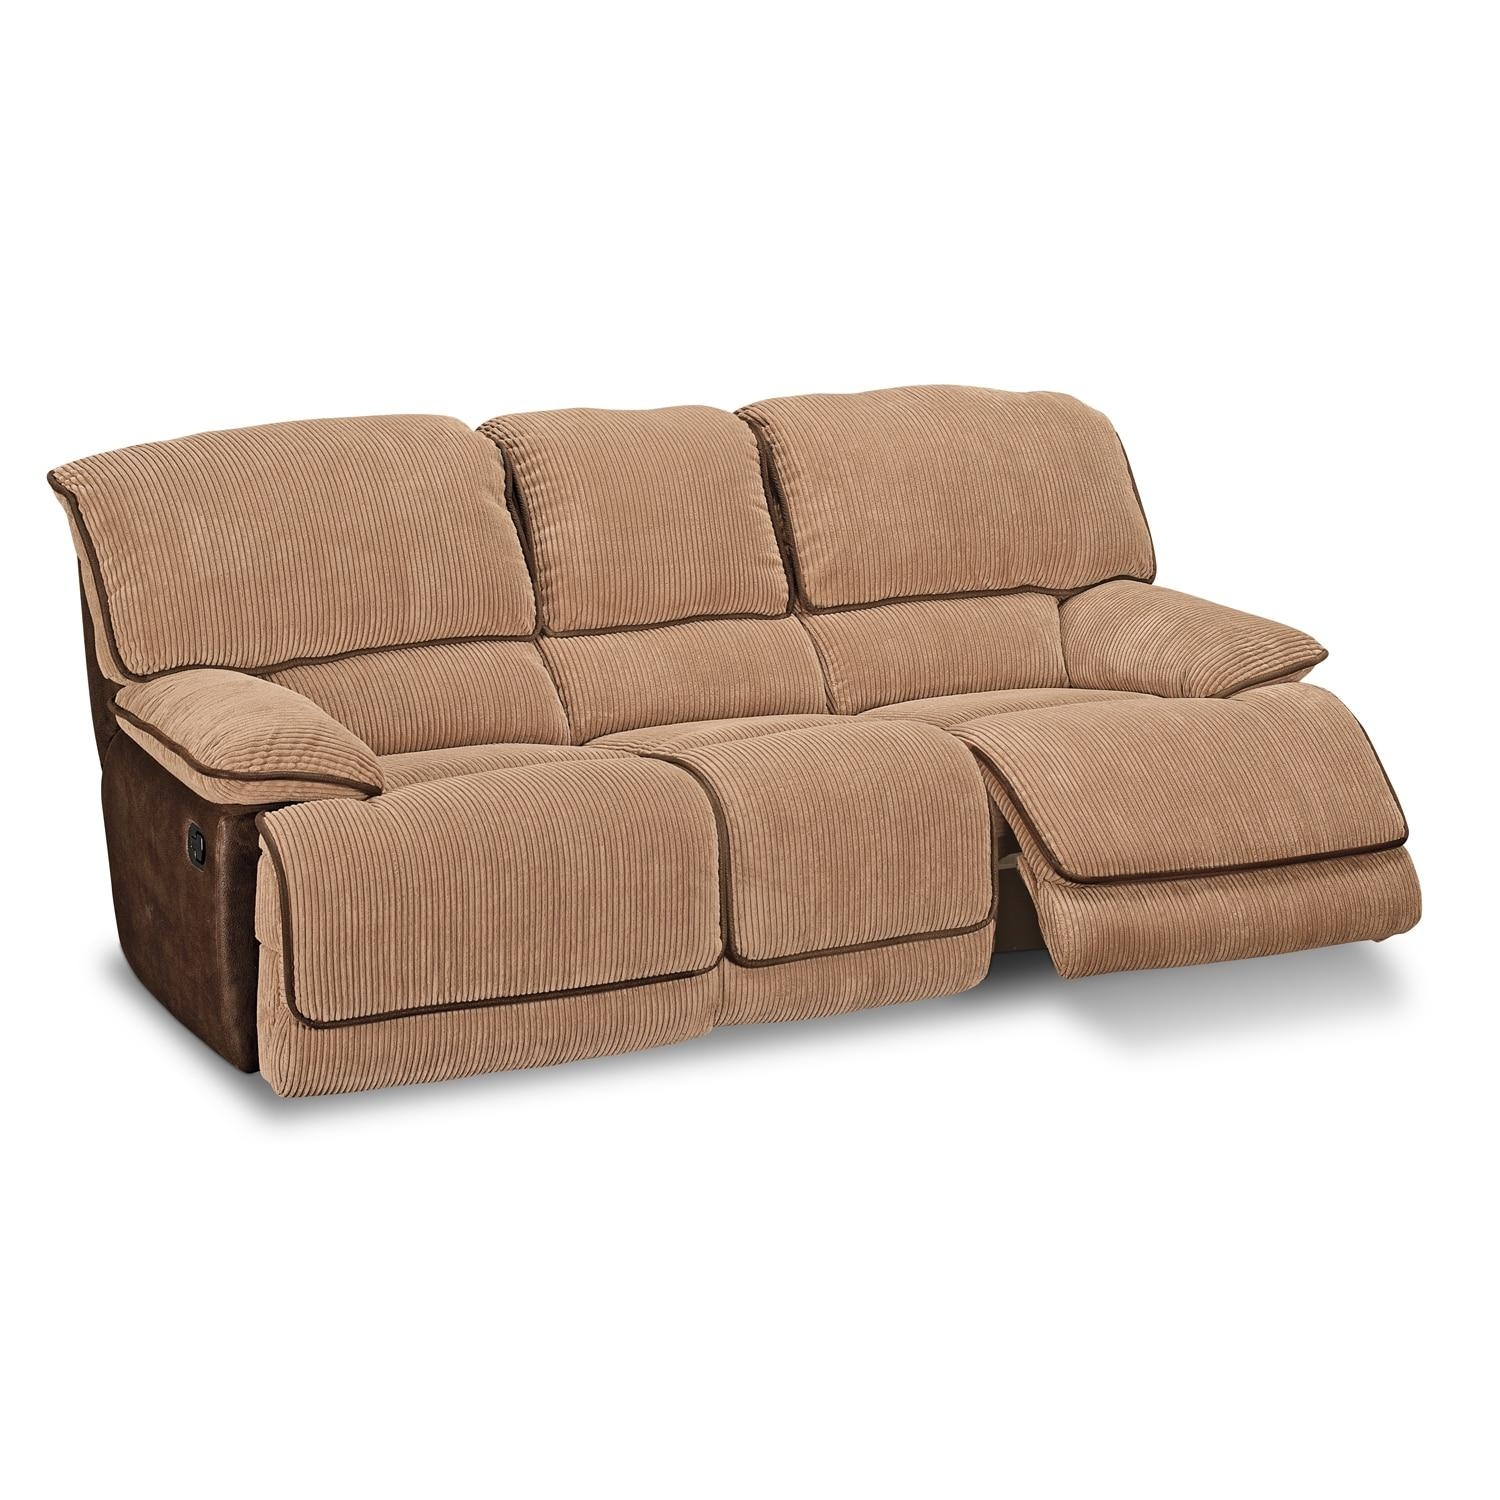 Sofas Center : Pulsar Dual Powerclining Sofa Loveseat Covers Pertaining To Berkline Couches (View 17 of 20)